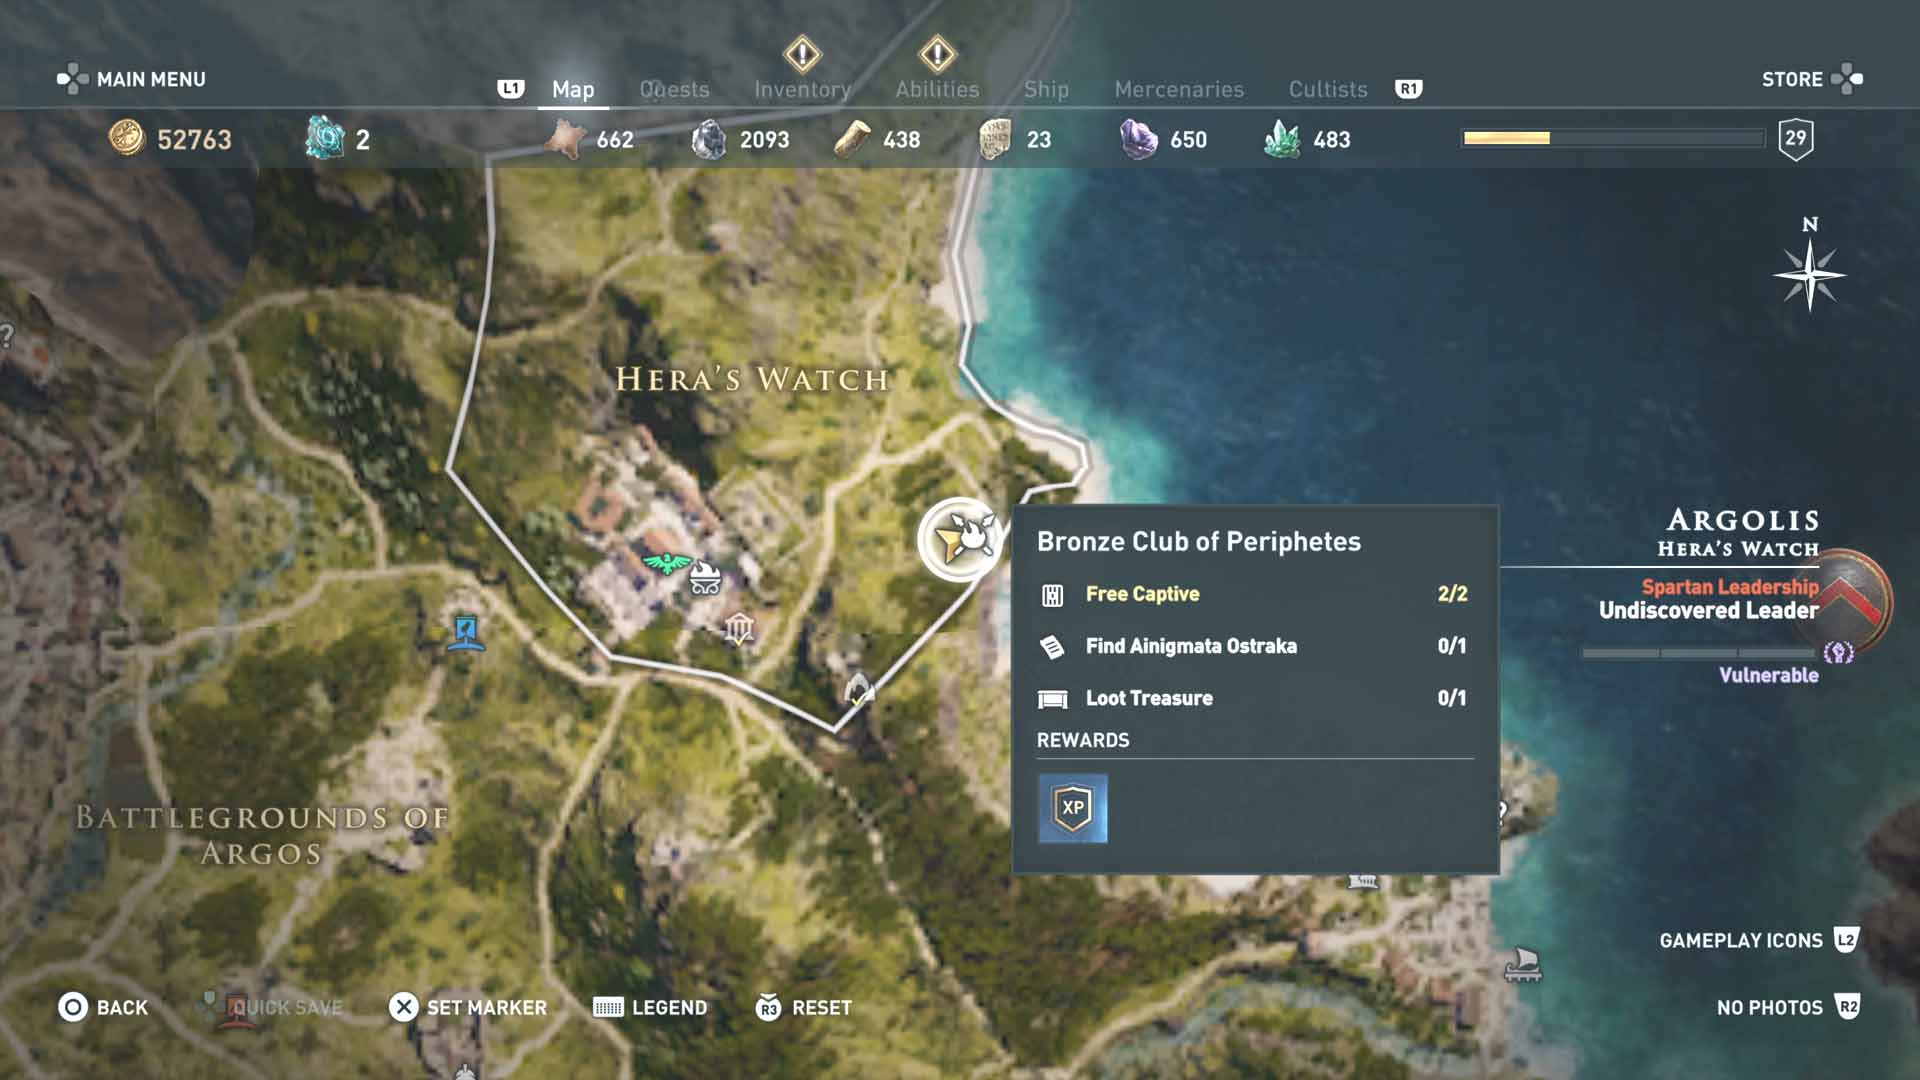 All Loot Treasure And Ancient Tablet Locations Argolis